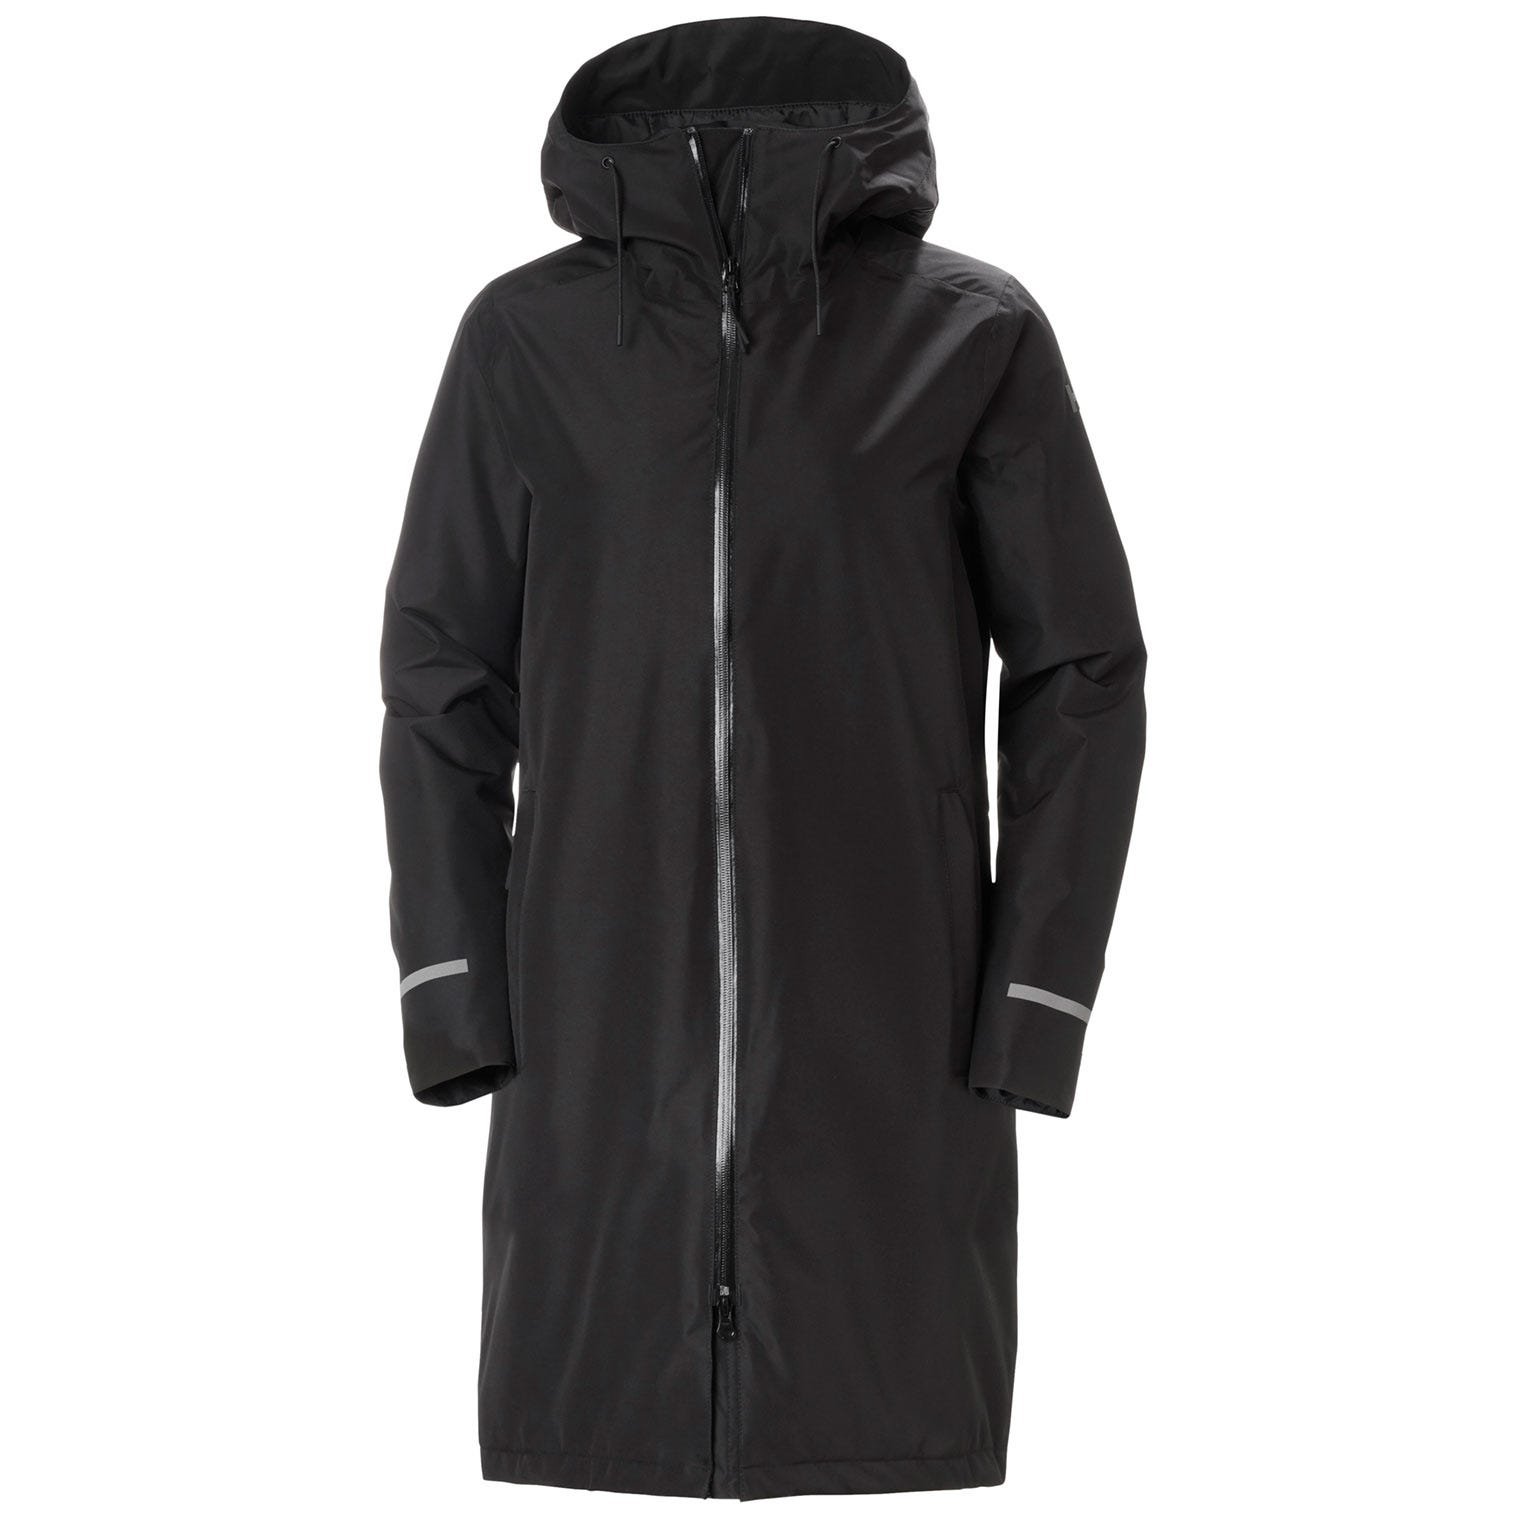 Helly Hansen Womens Aspire Rain Coat Parka Black M